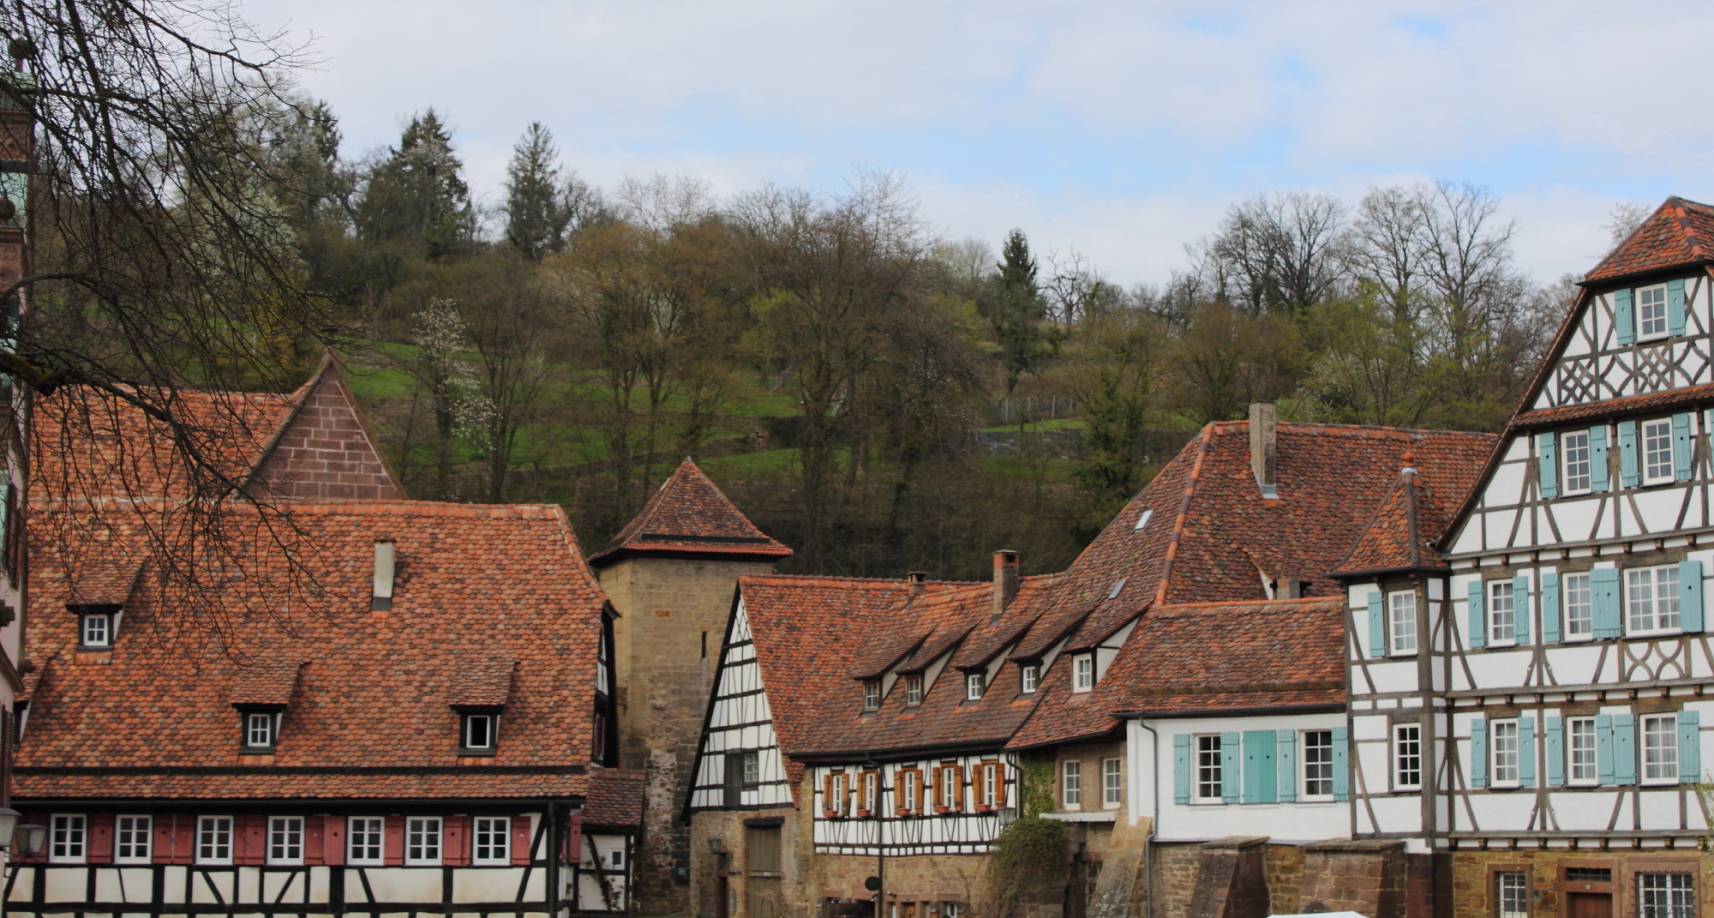 Around the courtyard of Maulbronn abbey